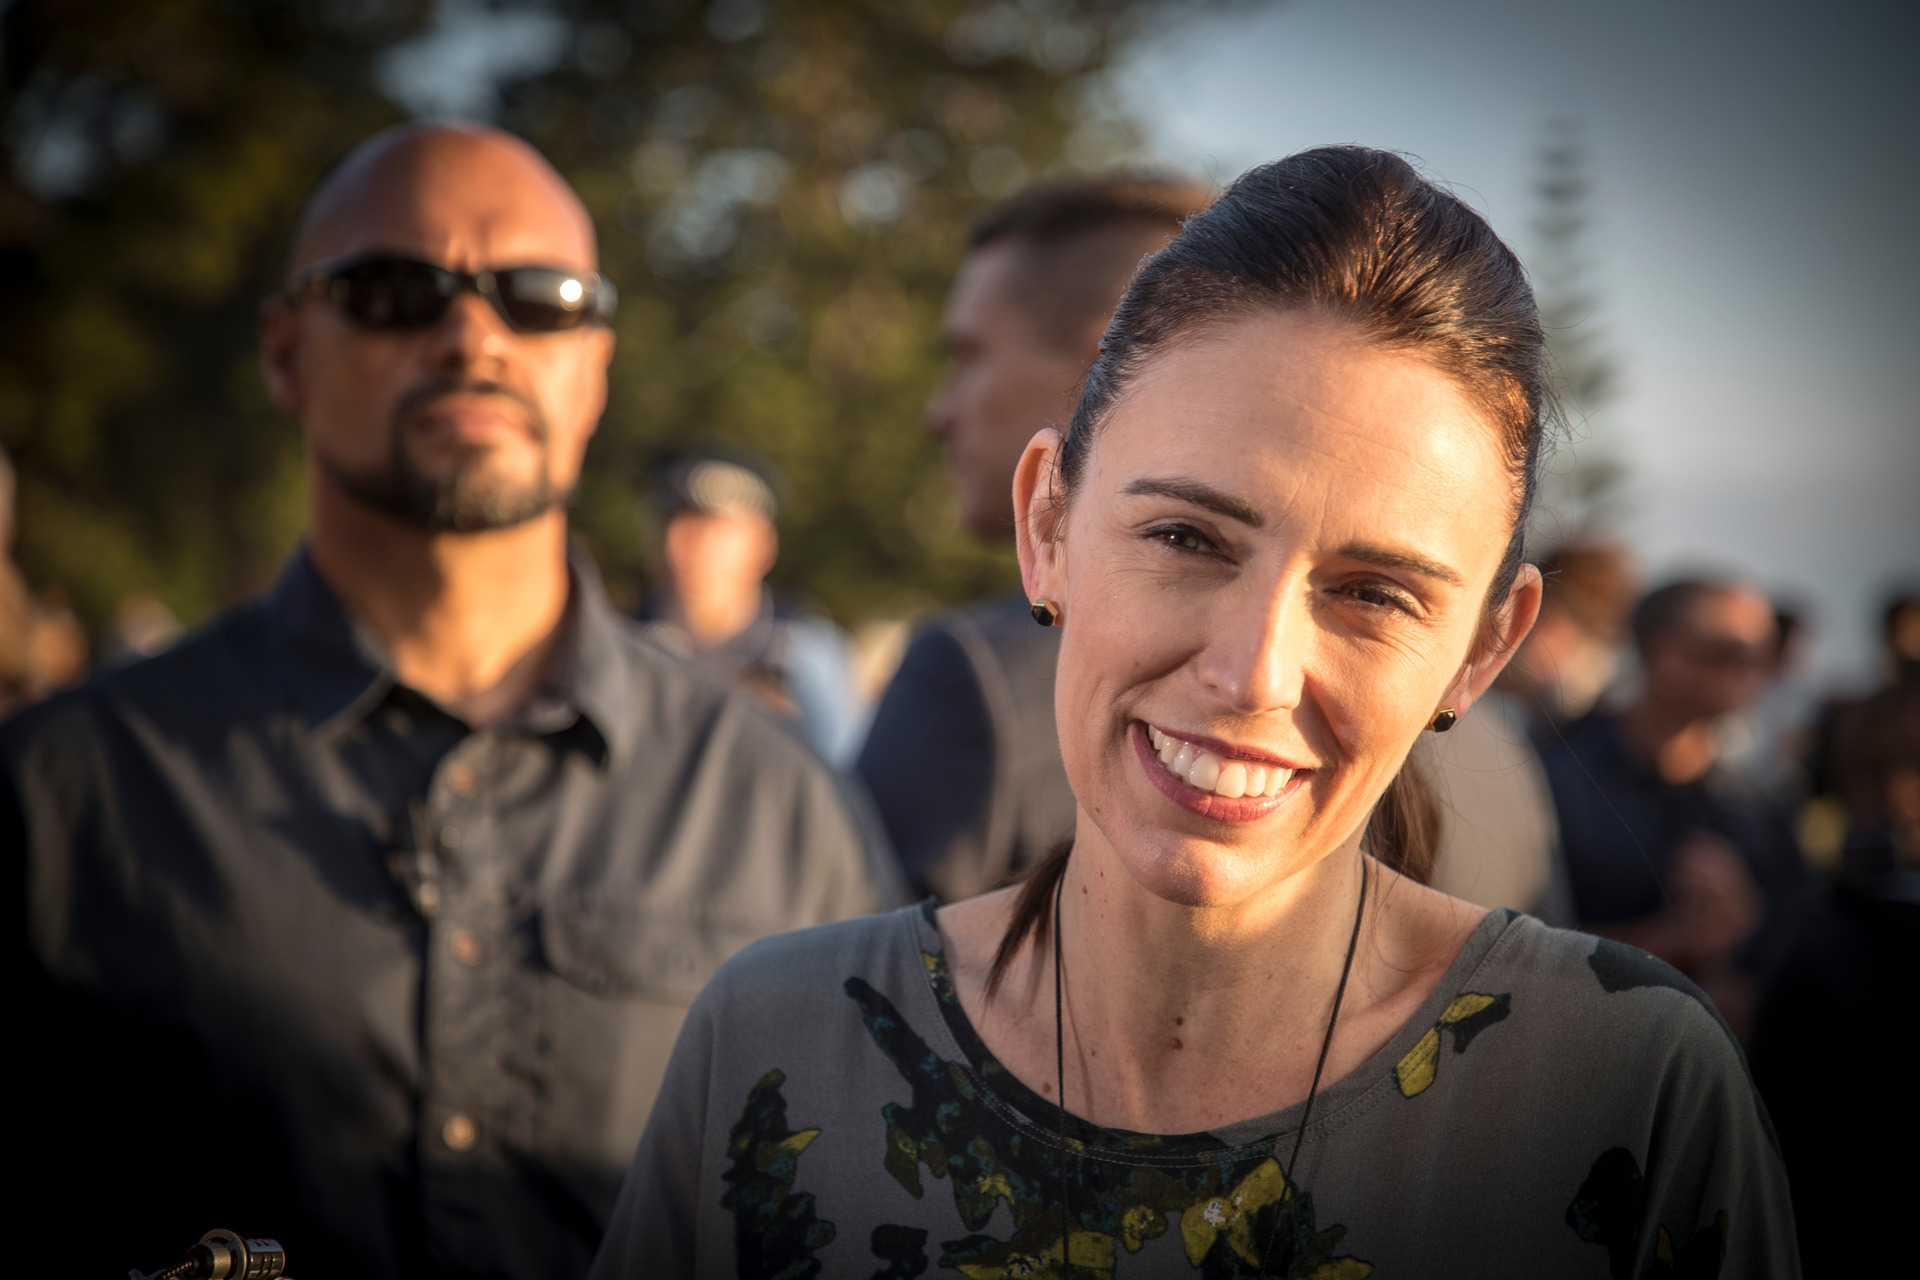 Jacinda Ardern on 'stardust' of the 2017 election: She said no to leadership for four days